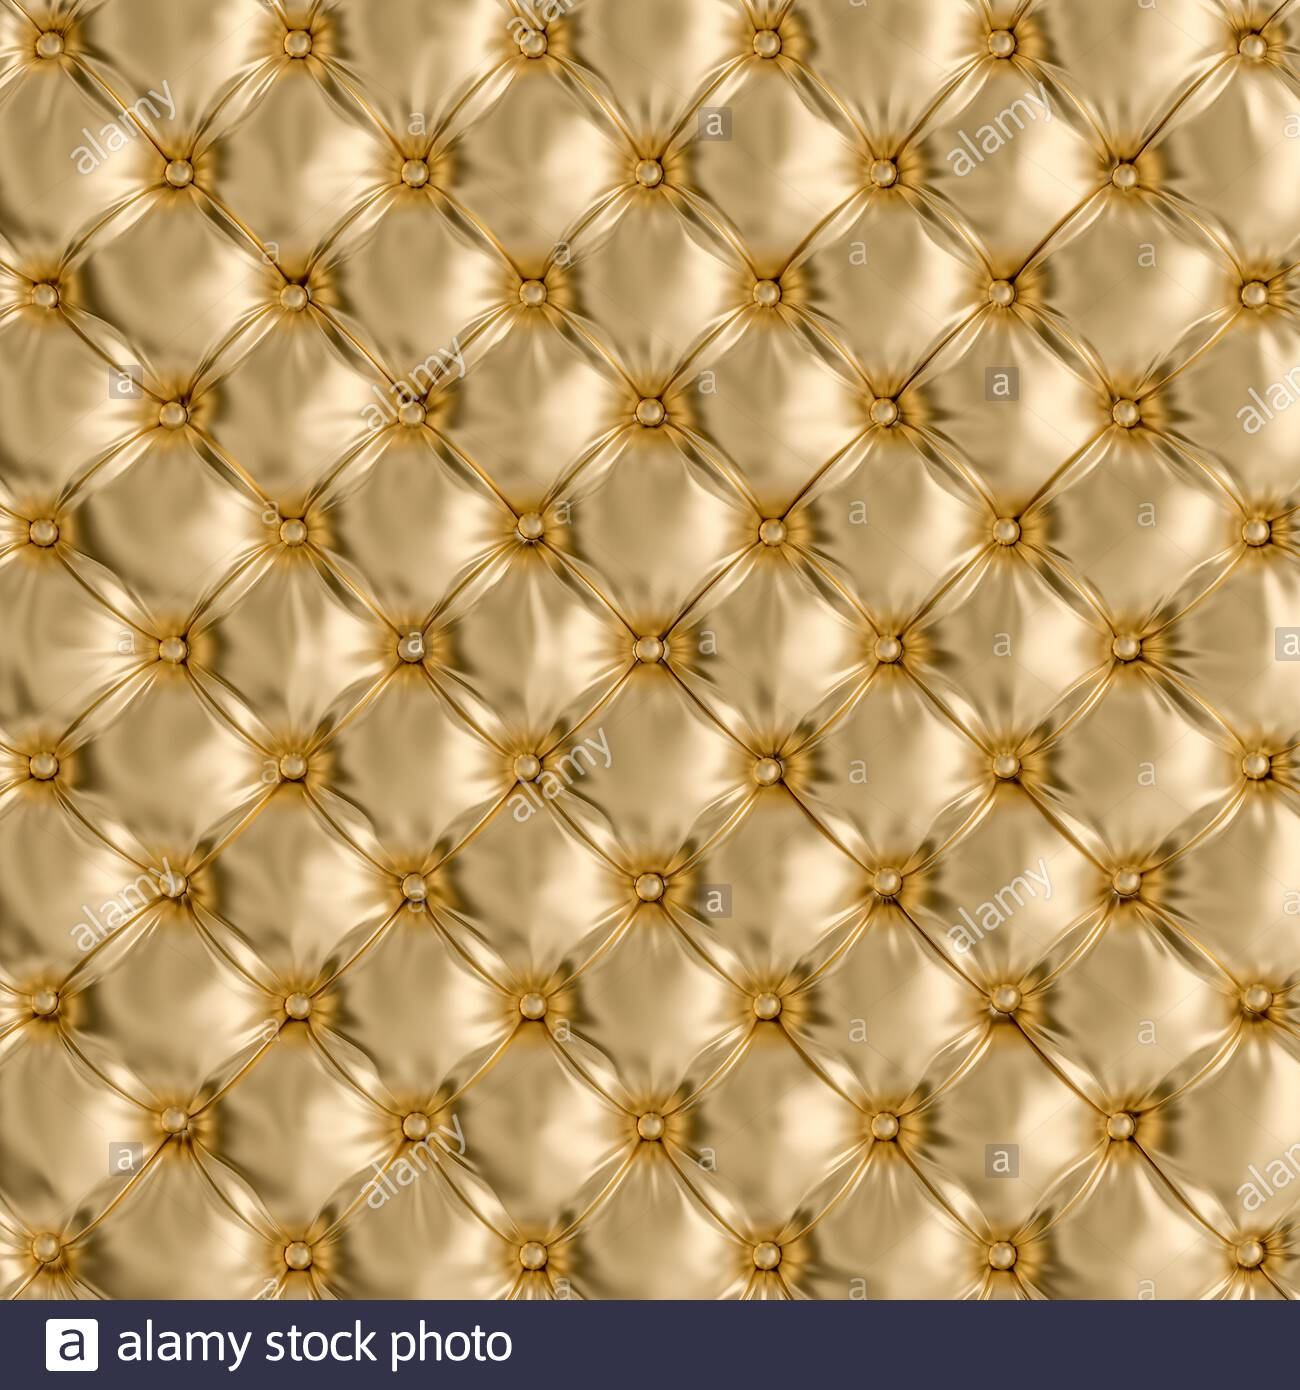 detail of gold colored sofa texture 3d render image retro and 1300x1390